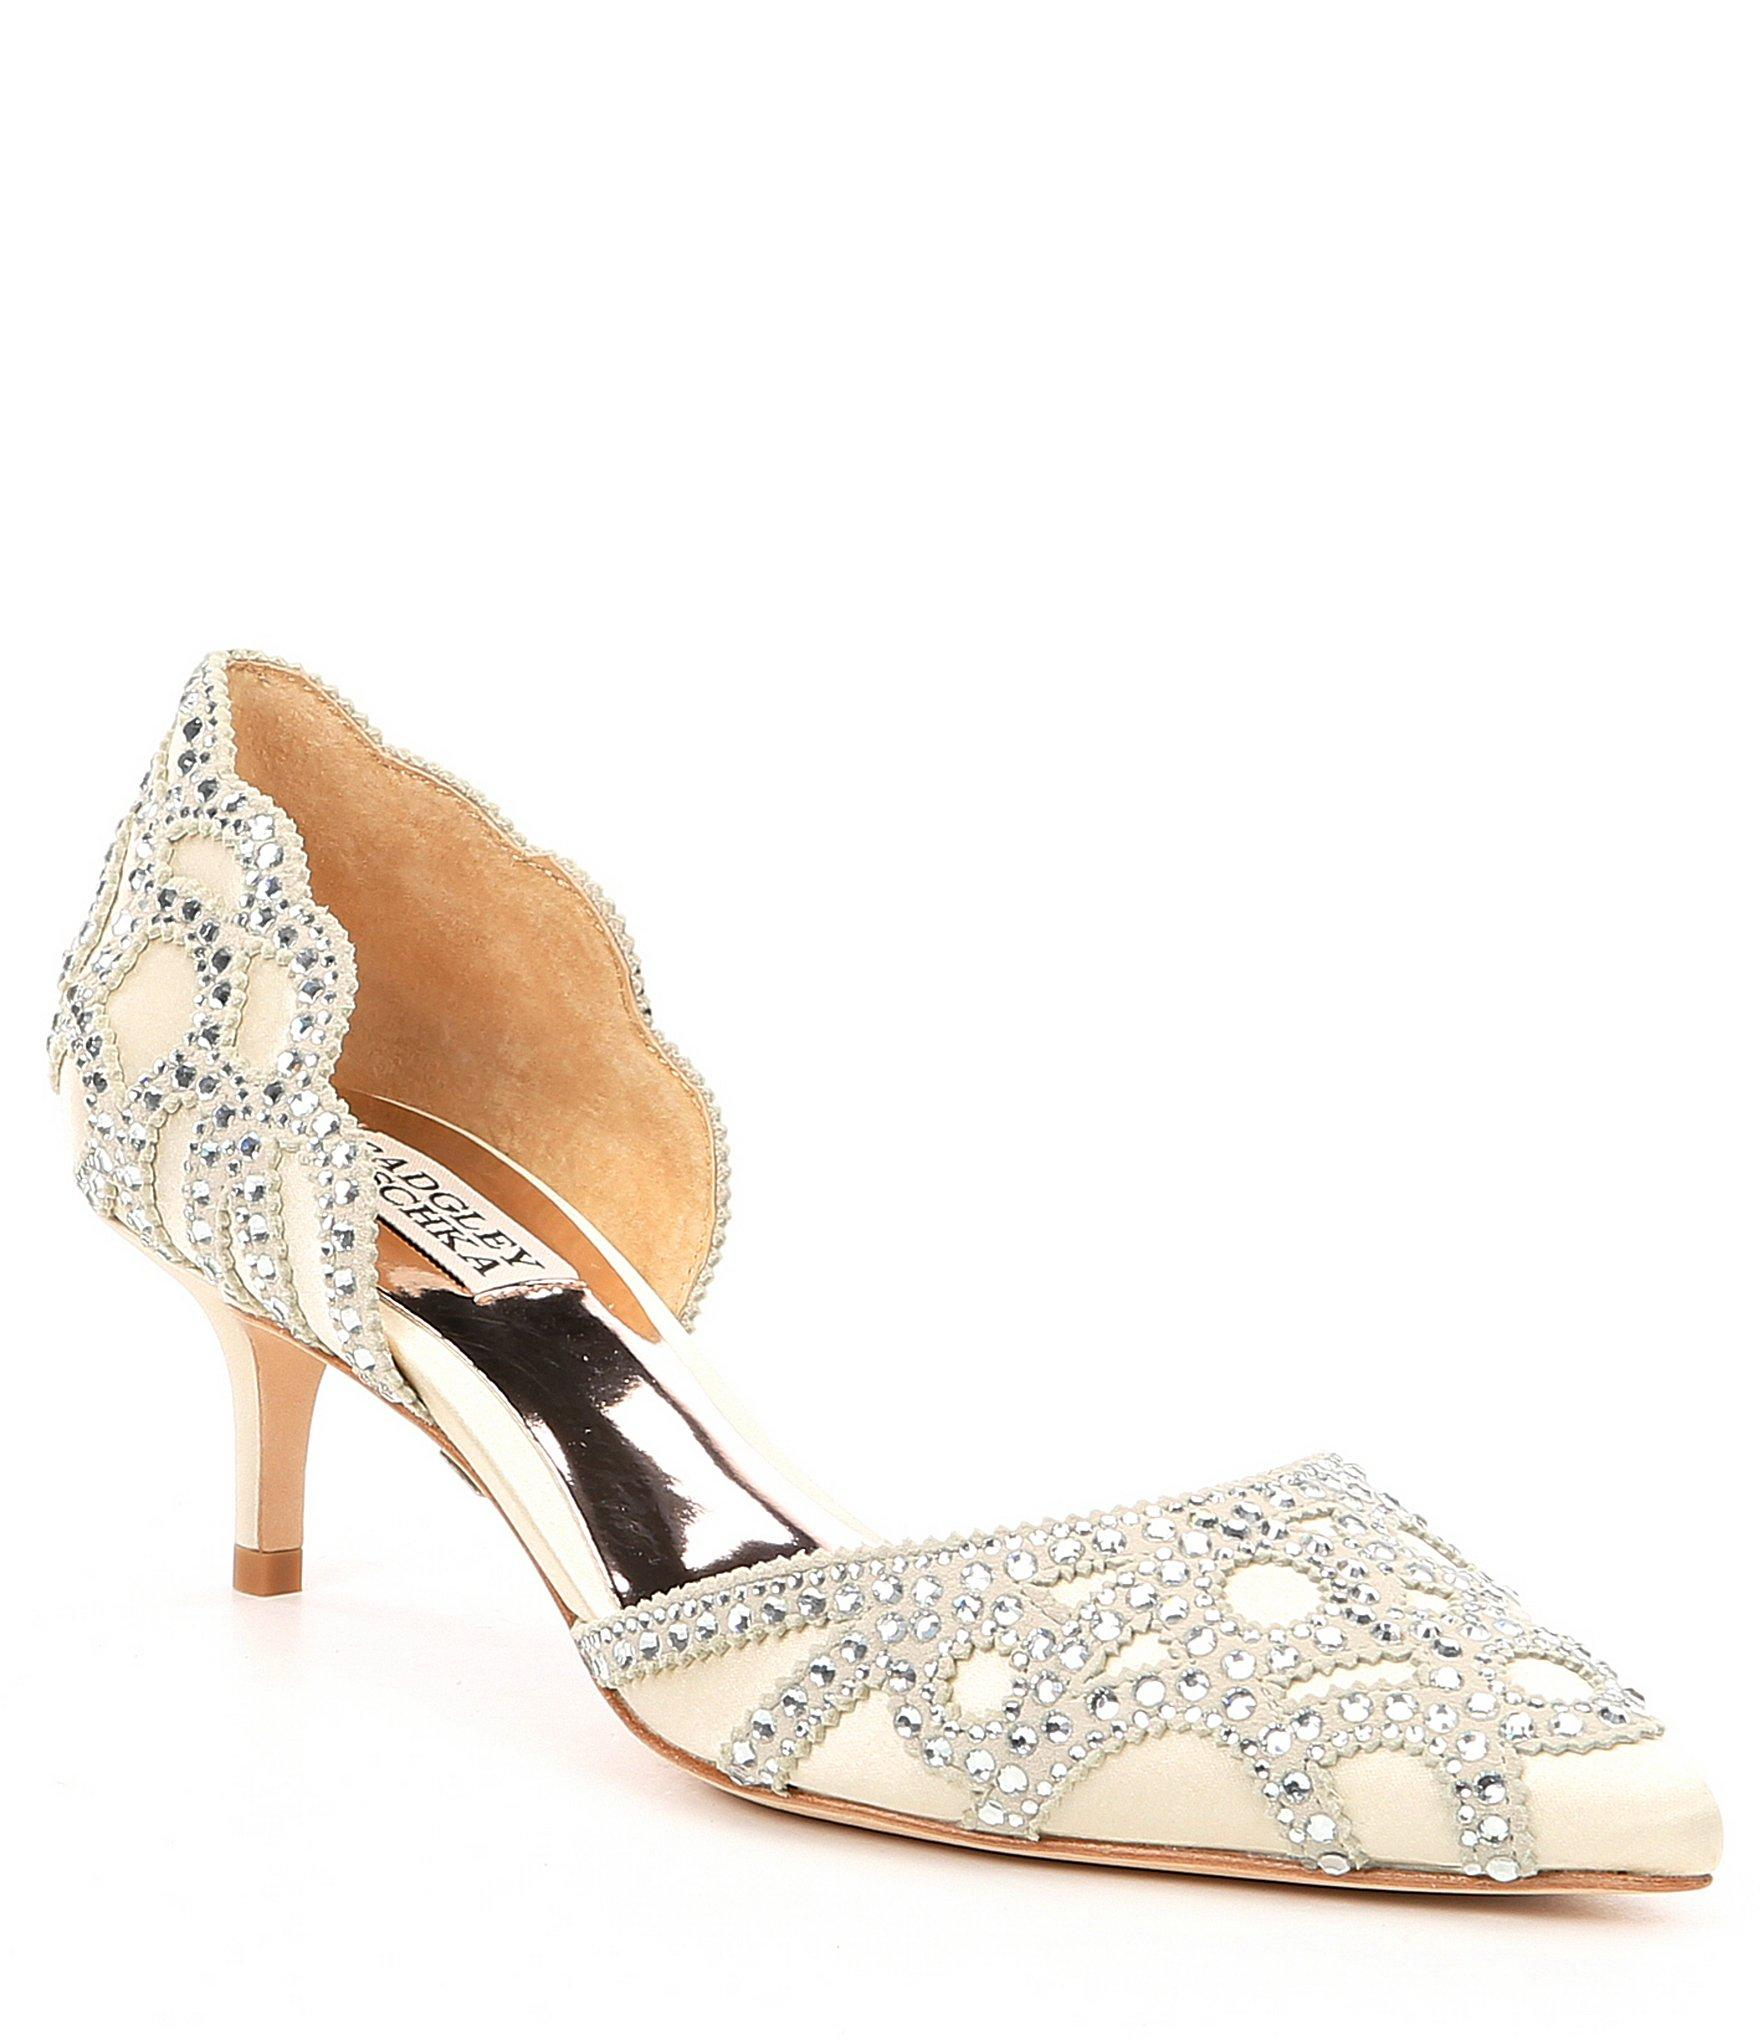 17728339c2 Badgley Mischka. Women's White Ginny Satin And Suede Jeweled D'orsay Pumps